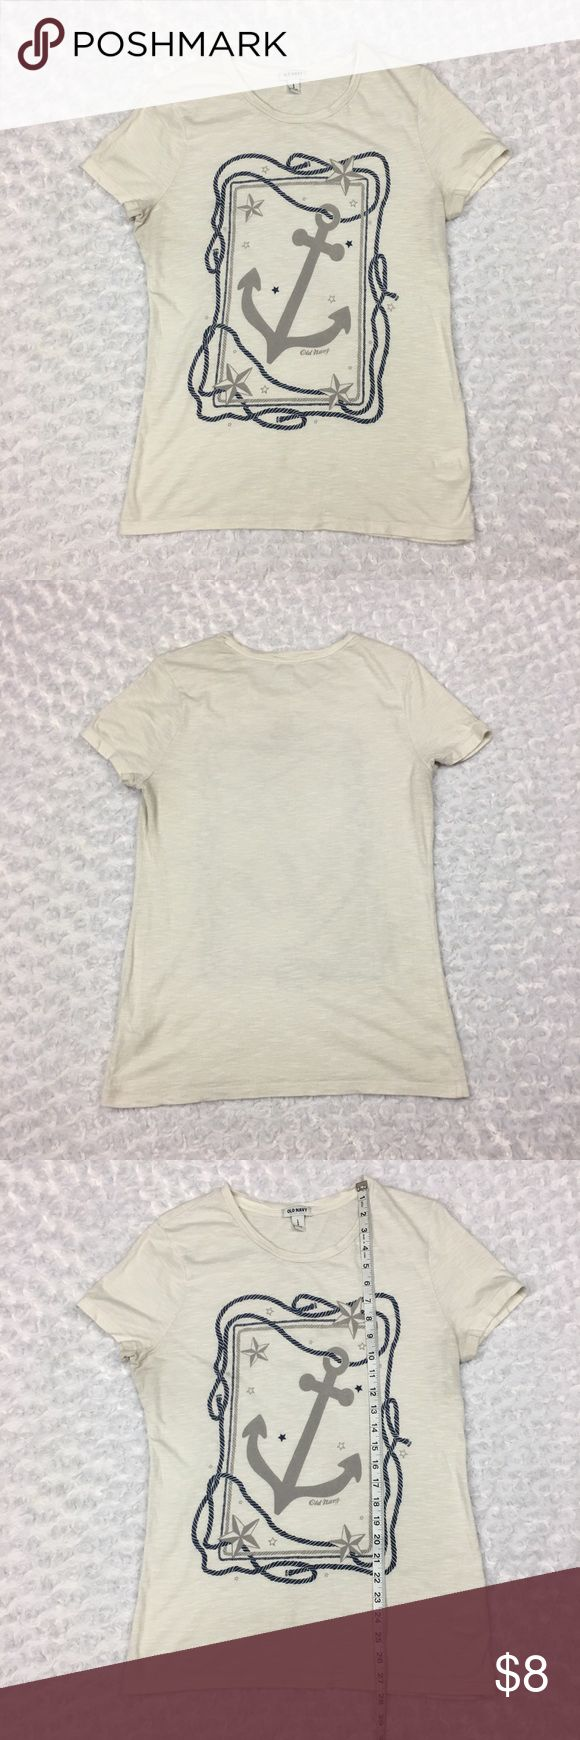 Off White Tshirt Top Nautical Theme Anchor Stars Old Navy Women's Off White Capsleeve Tshirt Top Nautical Theme Anchor Stars Rope  Size: Womens LARGE. SEE PHOTOS FOR MEASUREMENTS  Condition: Good used condition. SEE PHOTOS  * This listing is for ONE (1) Top *   * See photos for measurements and more details *  Please note: Color may vary slightly due to different display screen calibrations.  [D-39] Old Navy Tops Tees - Short Sleeve